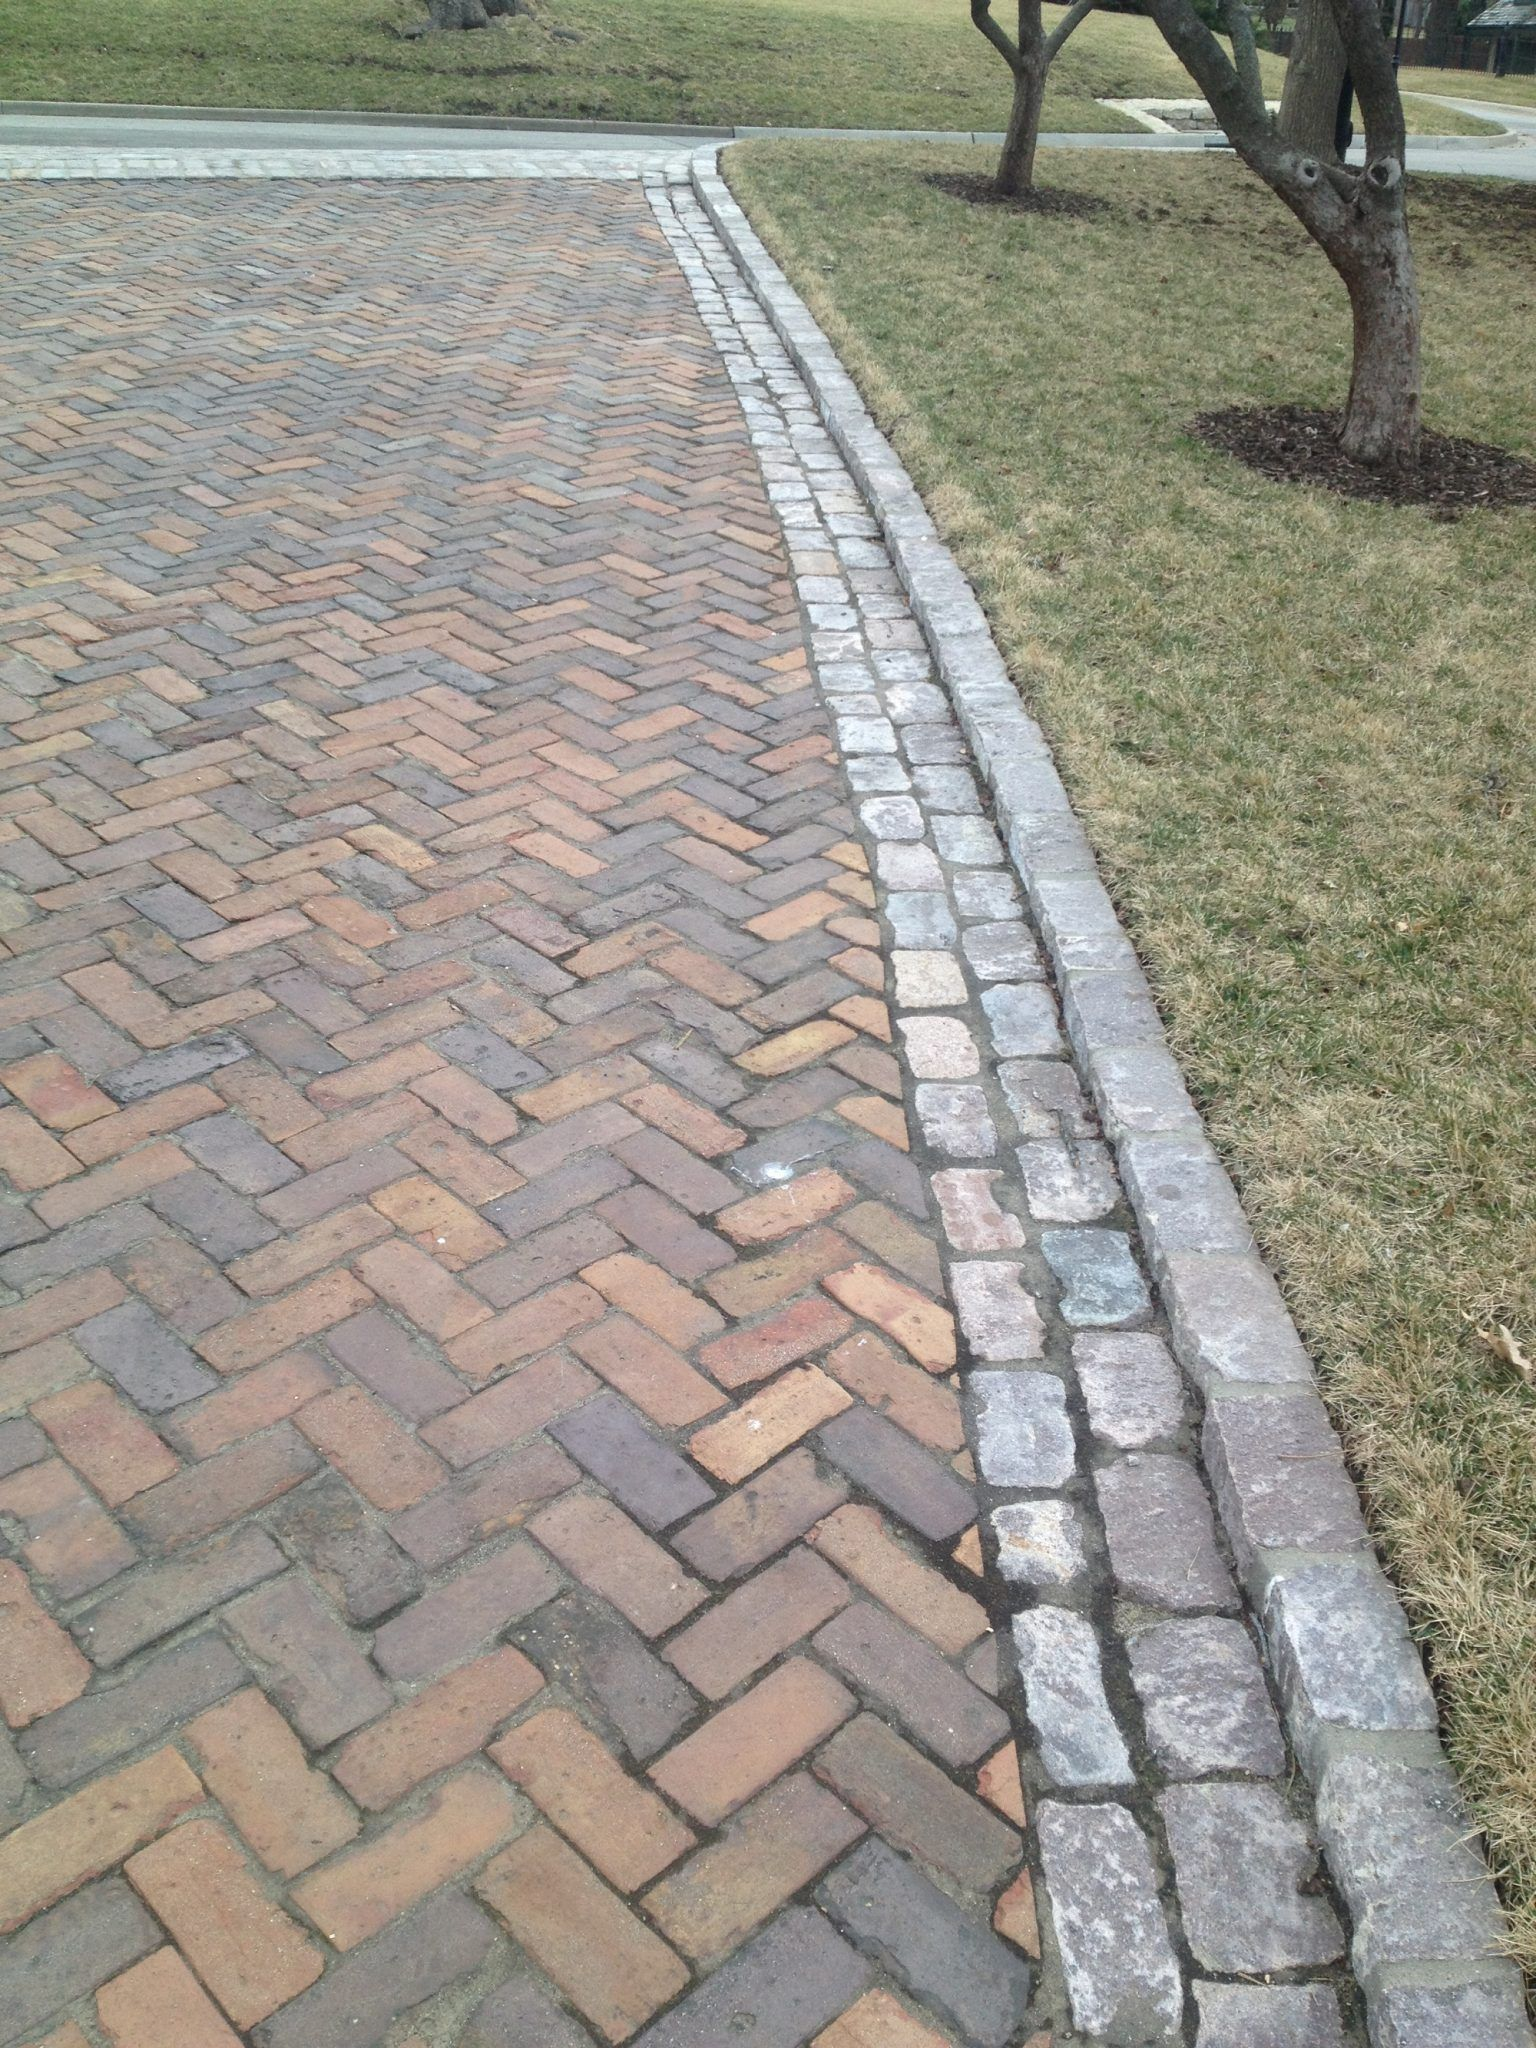 Reclaimed Antique Street Pavers For Sale Pavers Brick Pavers For Sale